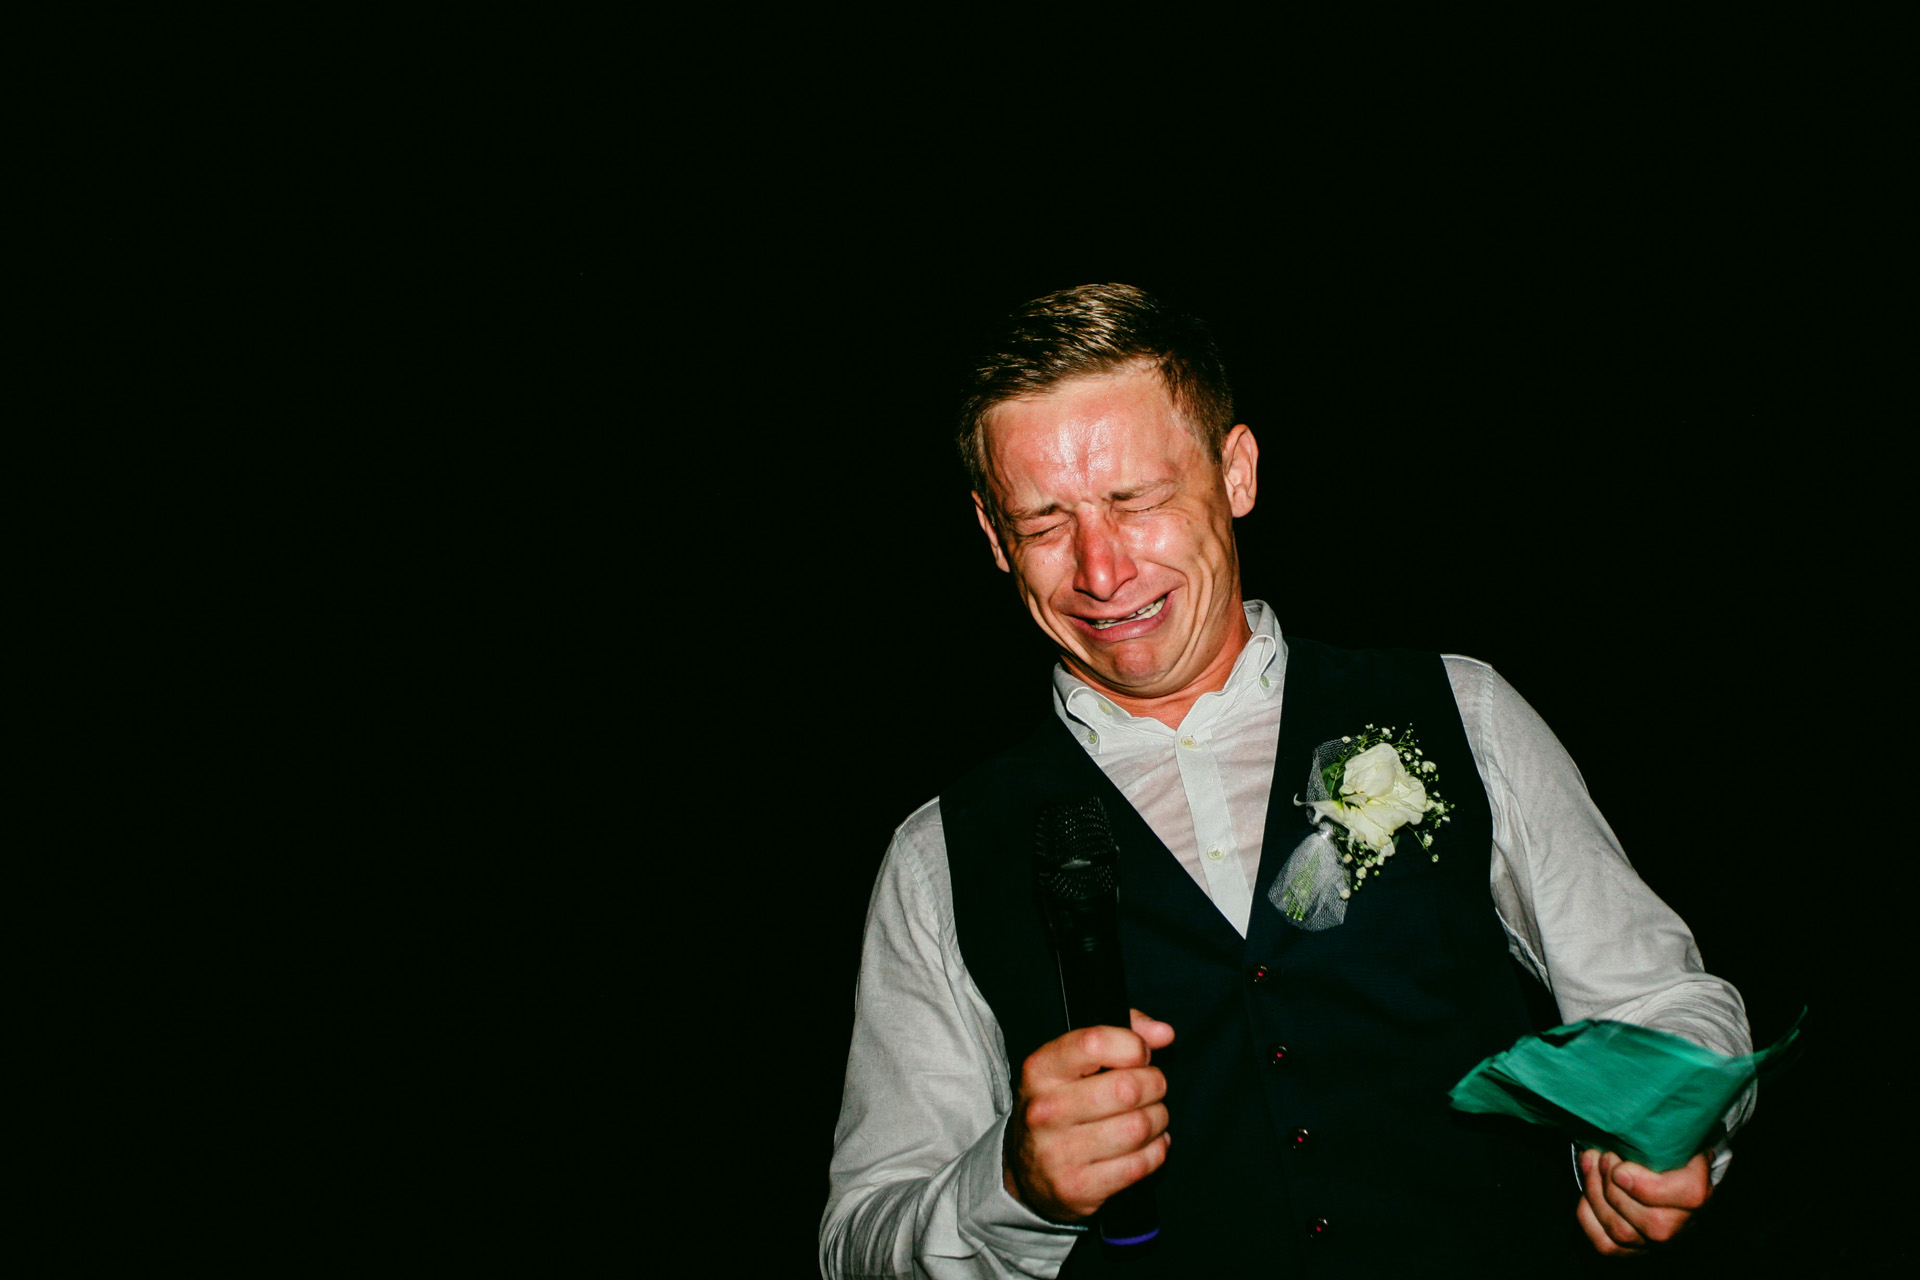 Sea Horse Beach Club Destination Elopement Photographer | The groom becomes extremely emotional while giving his speech